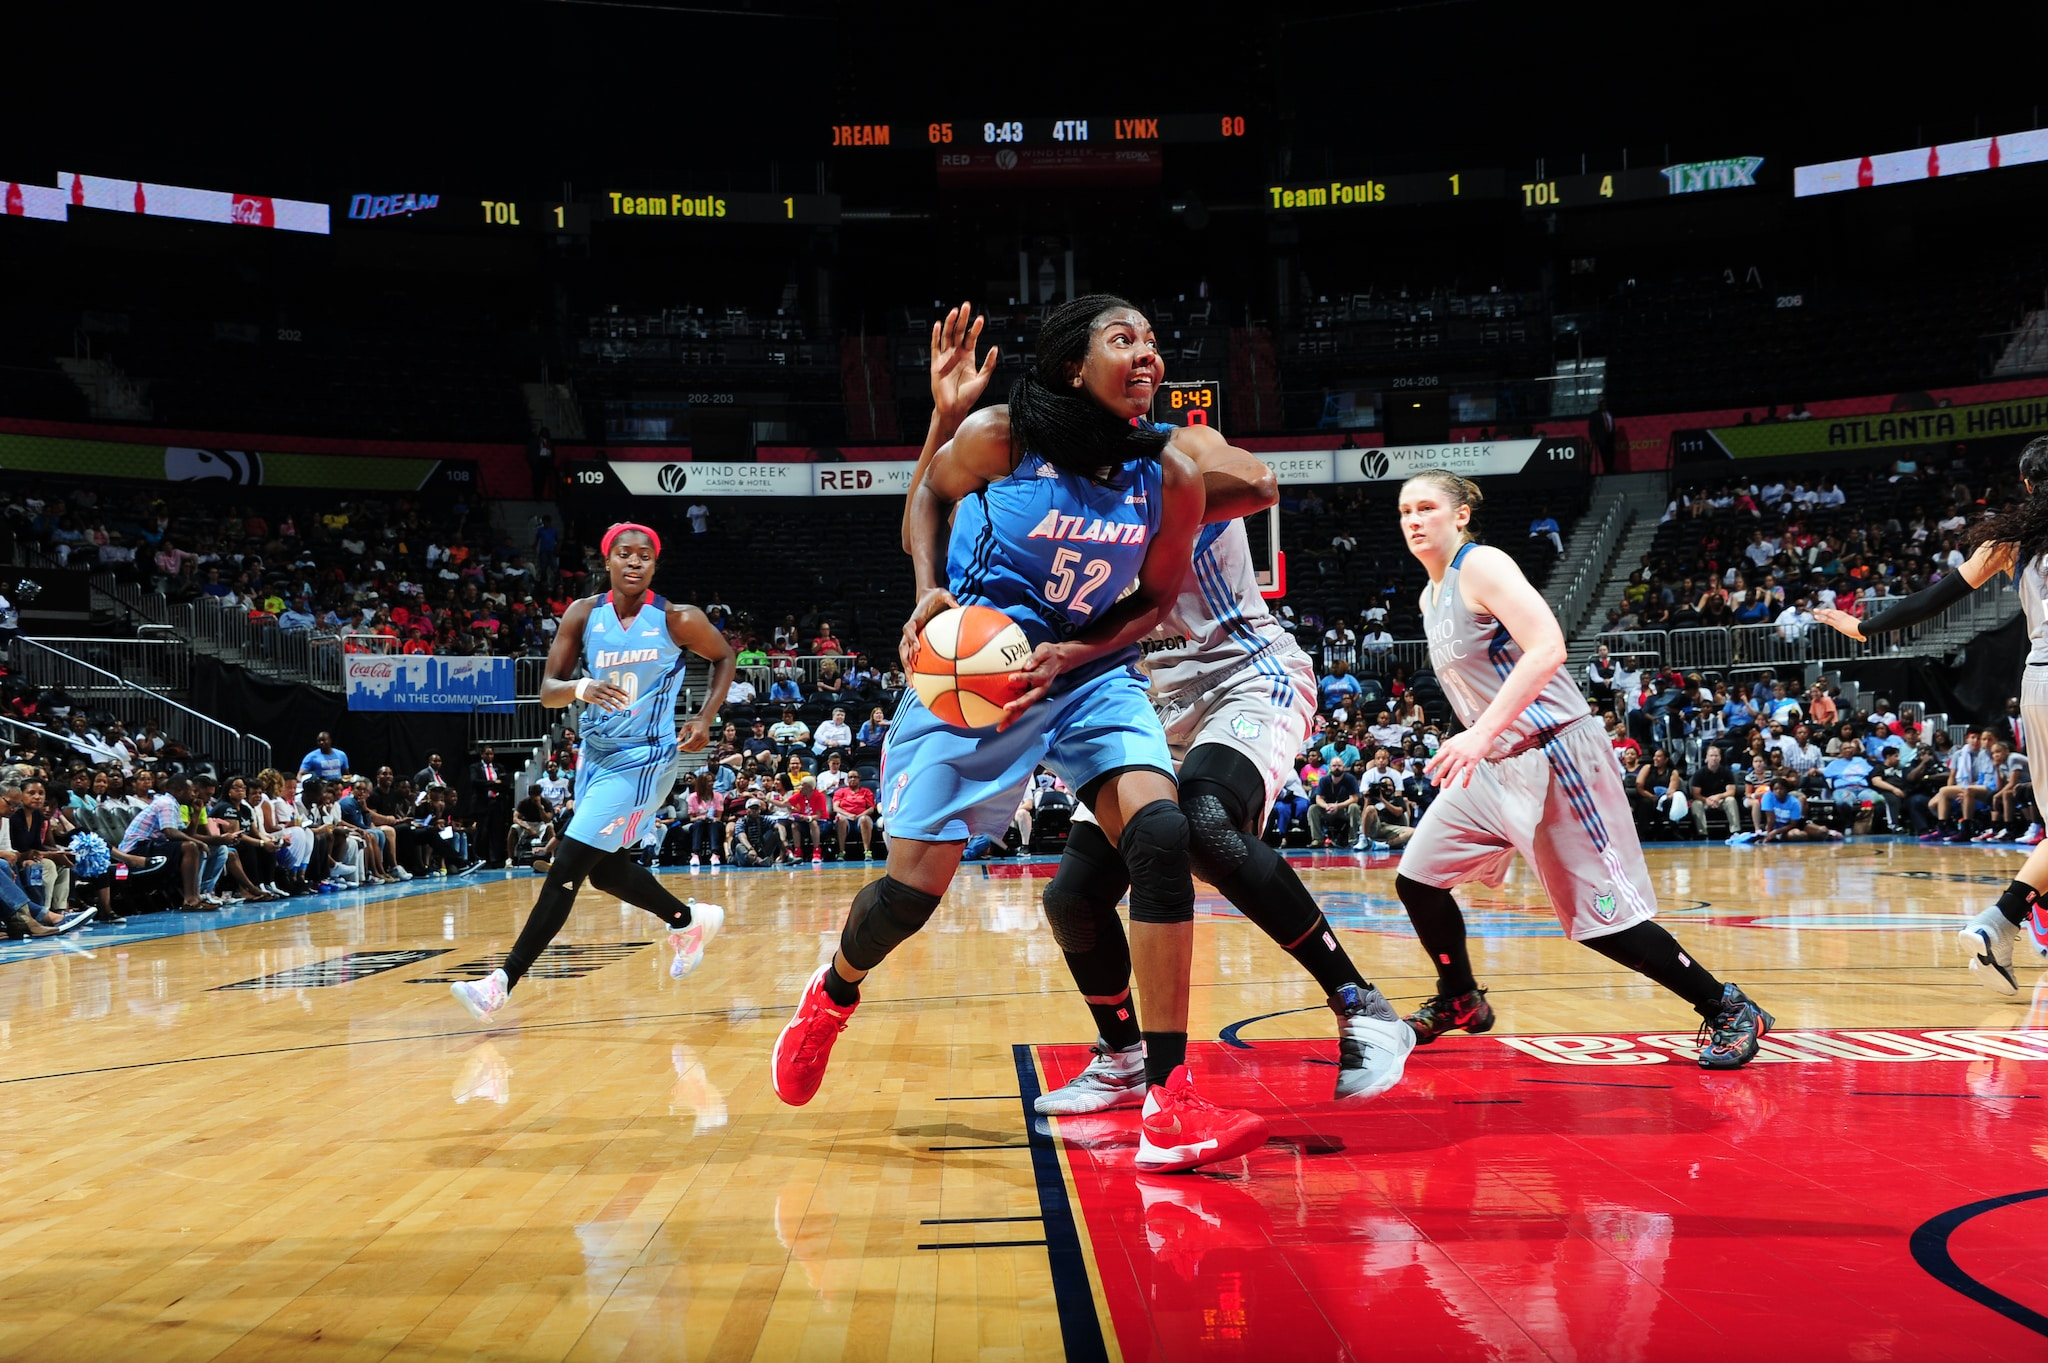 ATLANTA, GA - JUNE 10: Elizabeth Williams #52 of the Atlanta Dream handles the ball against the Minnesota Lynx on June 10, 2016 at Philips Arena in Atlanta, Georgia. NOTE TO USER: User expressly acknowledges and agrees that, by downloading and/or using this Photograph, user is consenting to the terms and conditions of the Getty Images License Agreement. Mandatory Copyright Notice: Copyright 2016 NBAE (Photo by Scott Cunningham/NBAE via Getty Images)